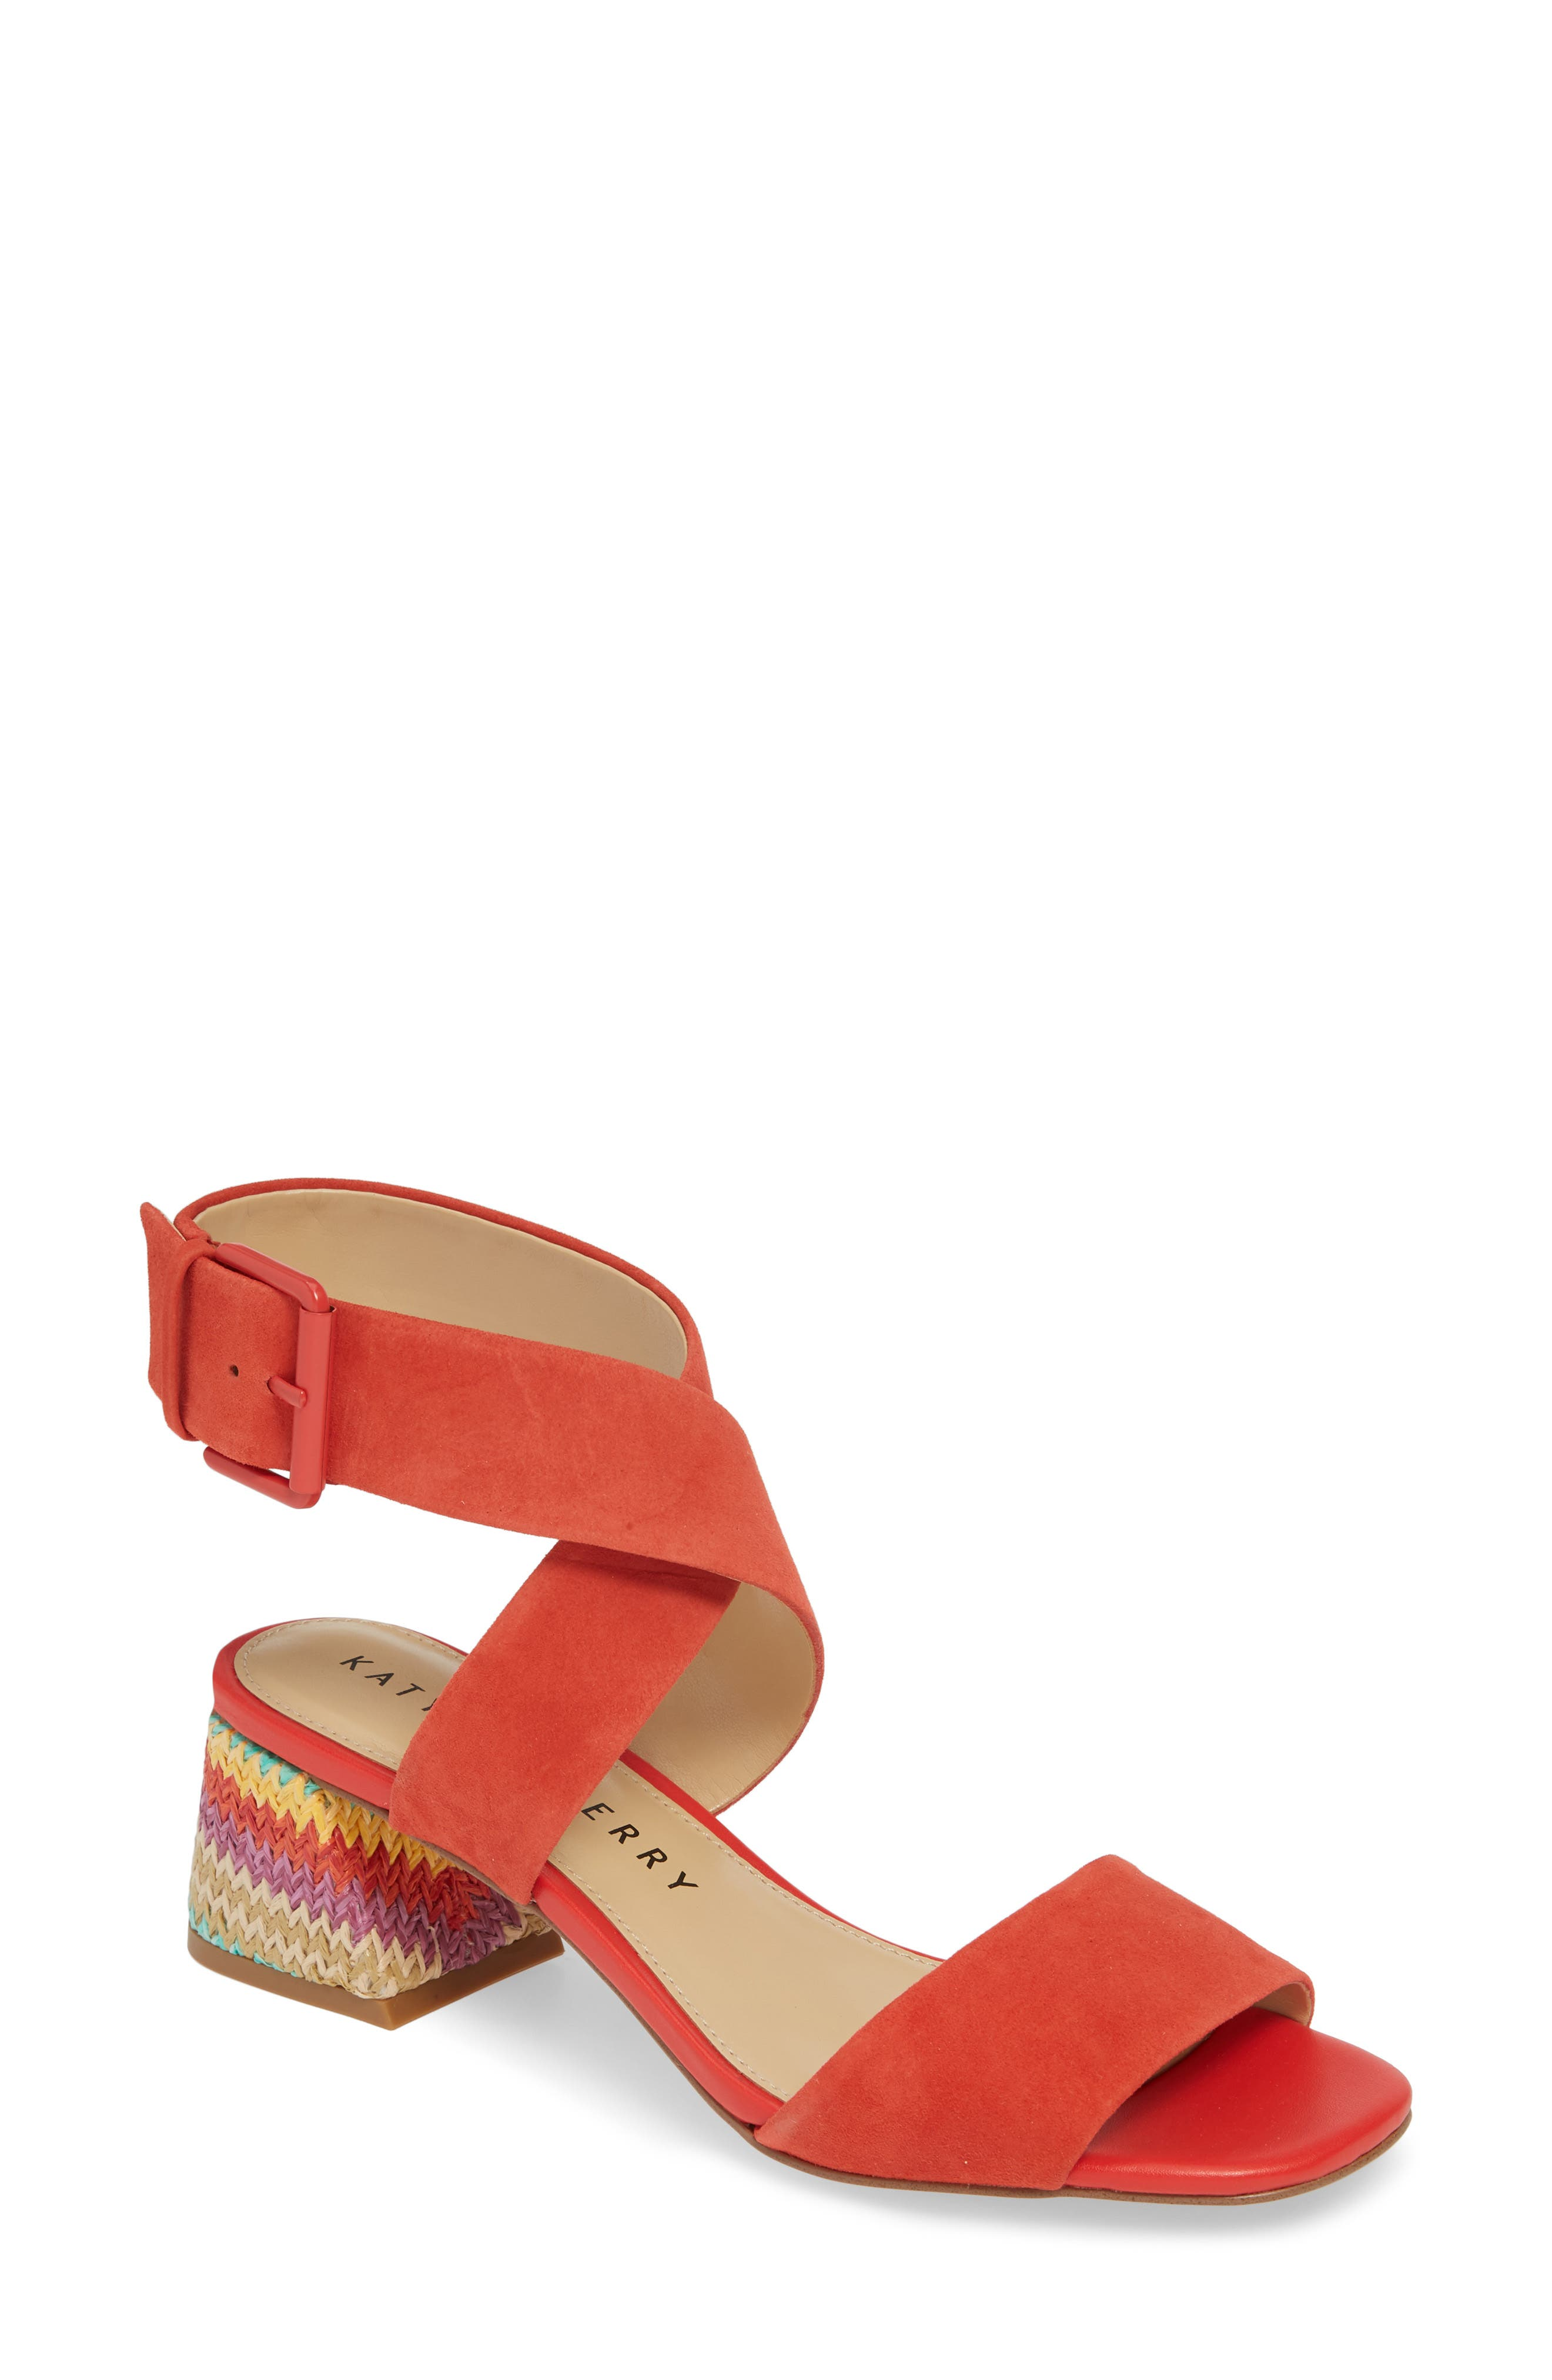 women's katy perry albee sandal, size 9.5 m - red